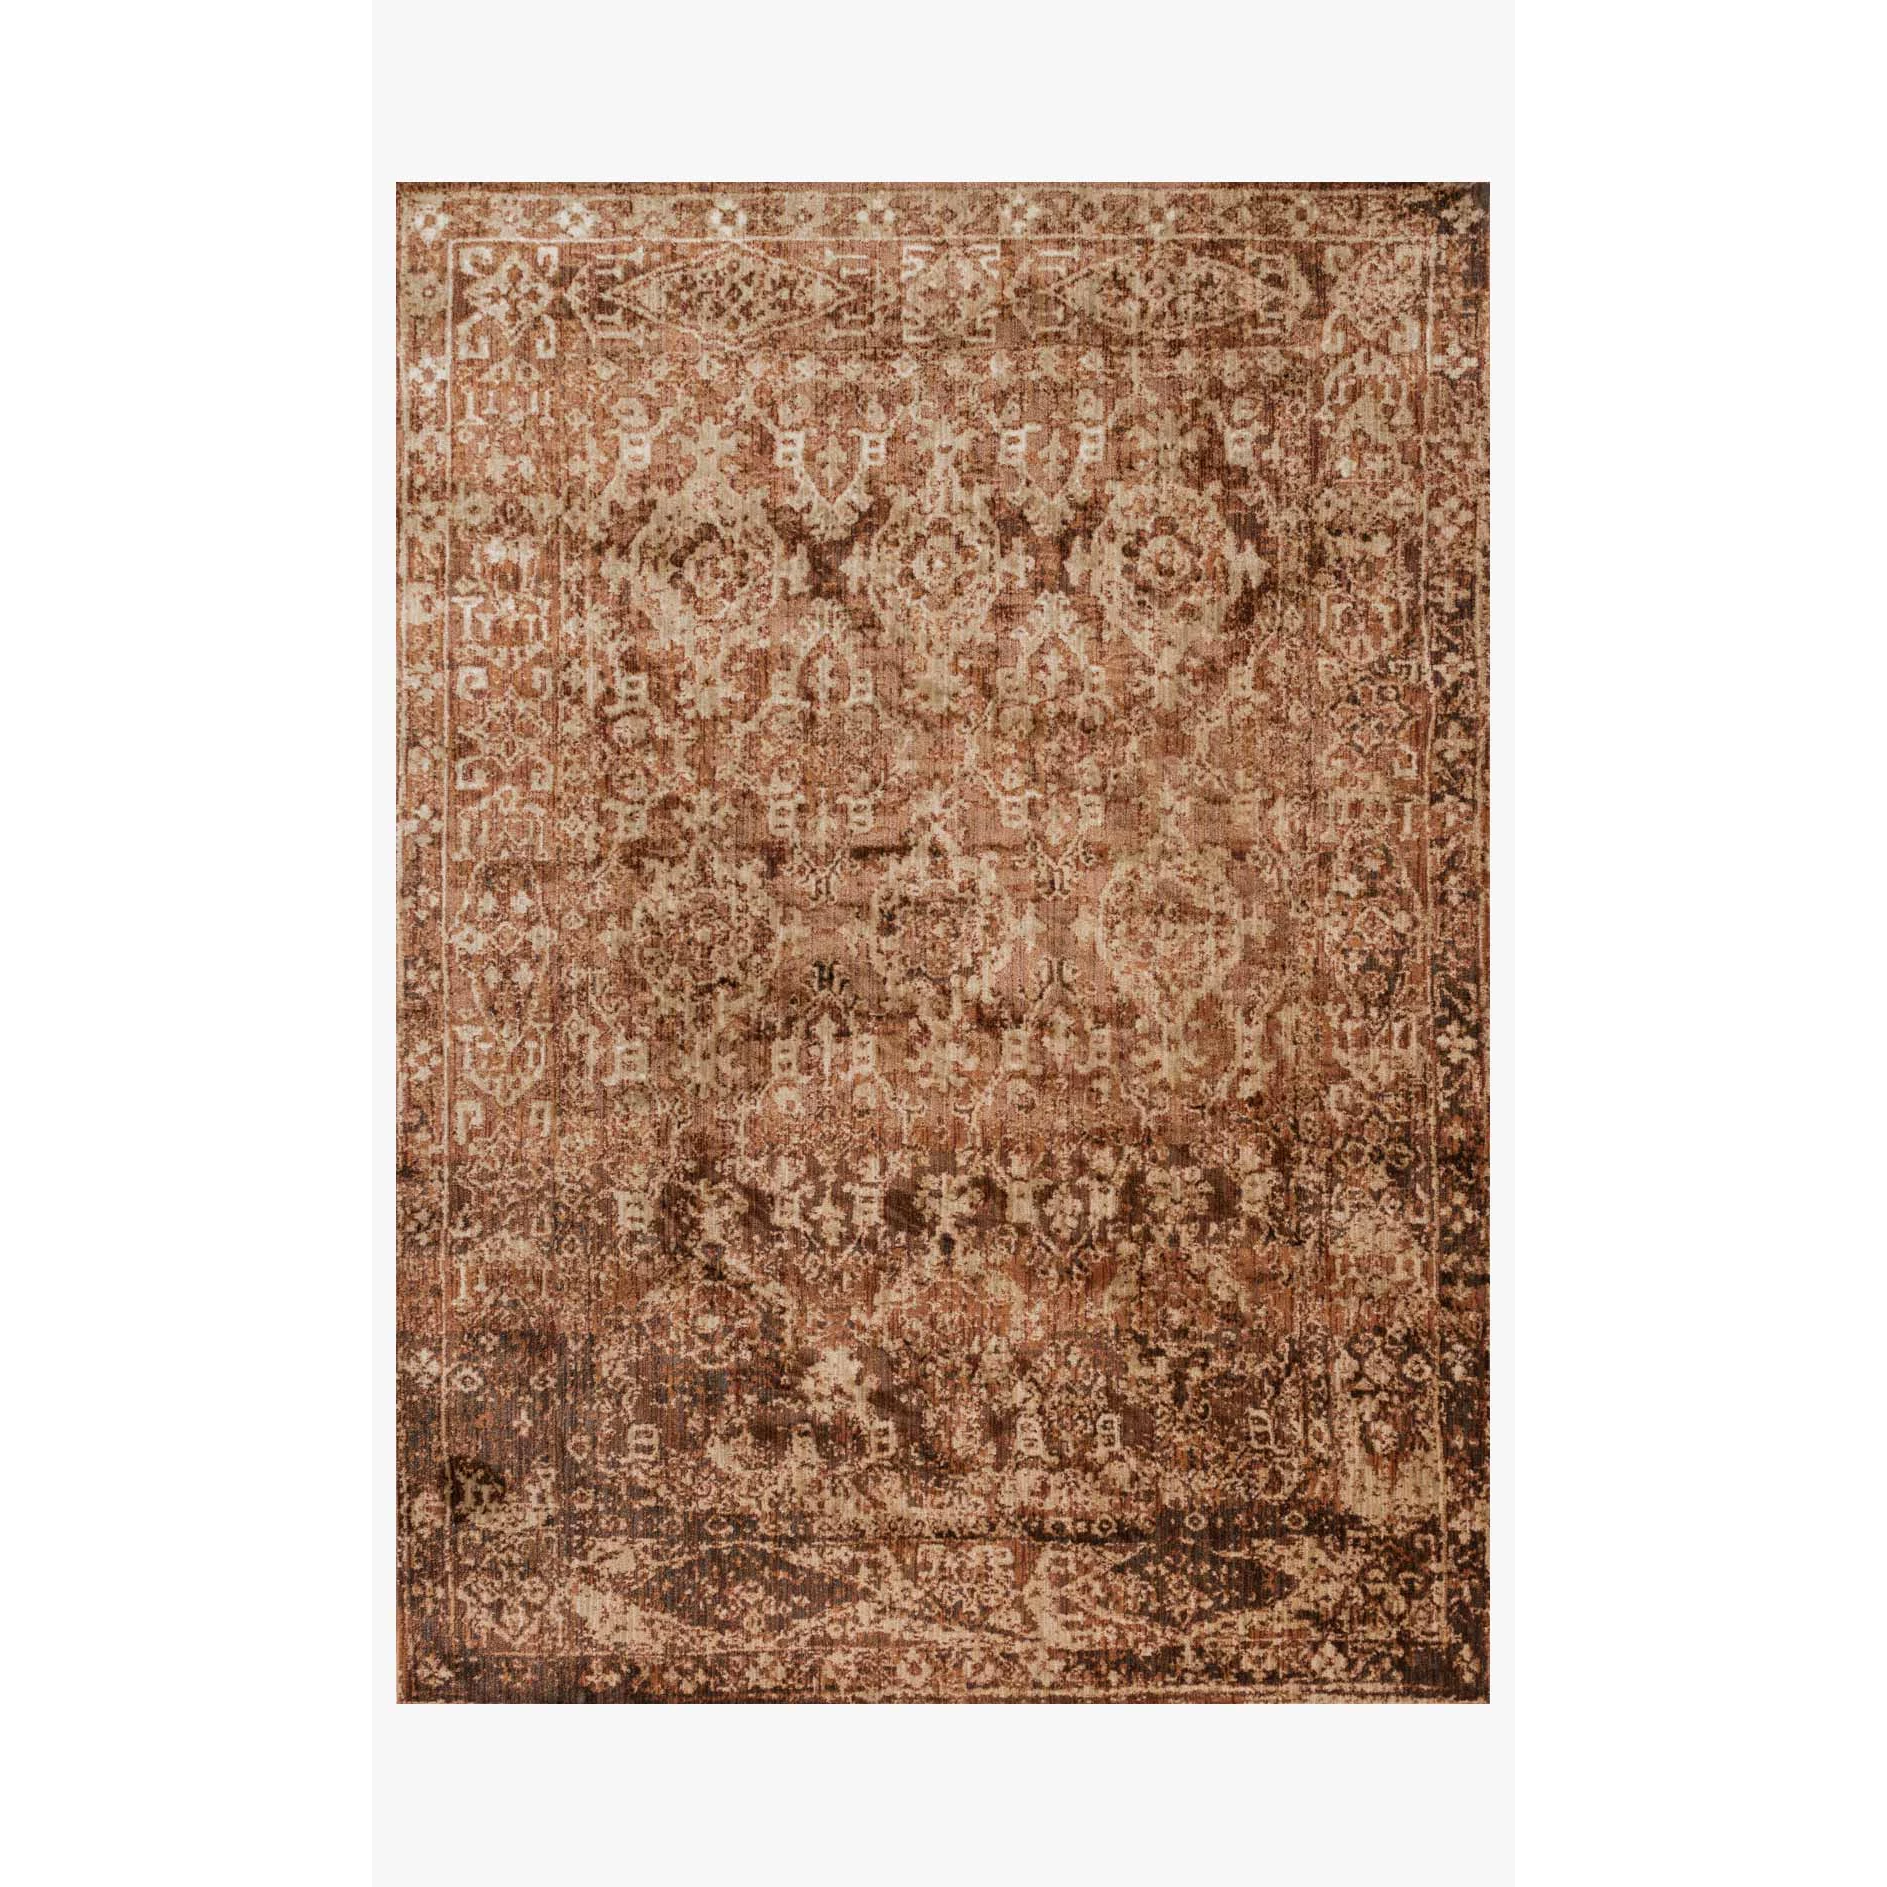 Joanna Gaines Kivi Rug Collection - KV-04 Sand/Copper-Loloi Rugs-Blue Hand Home